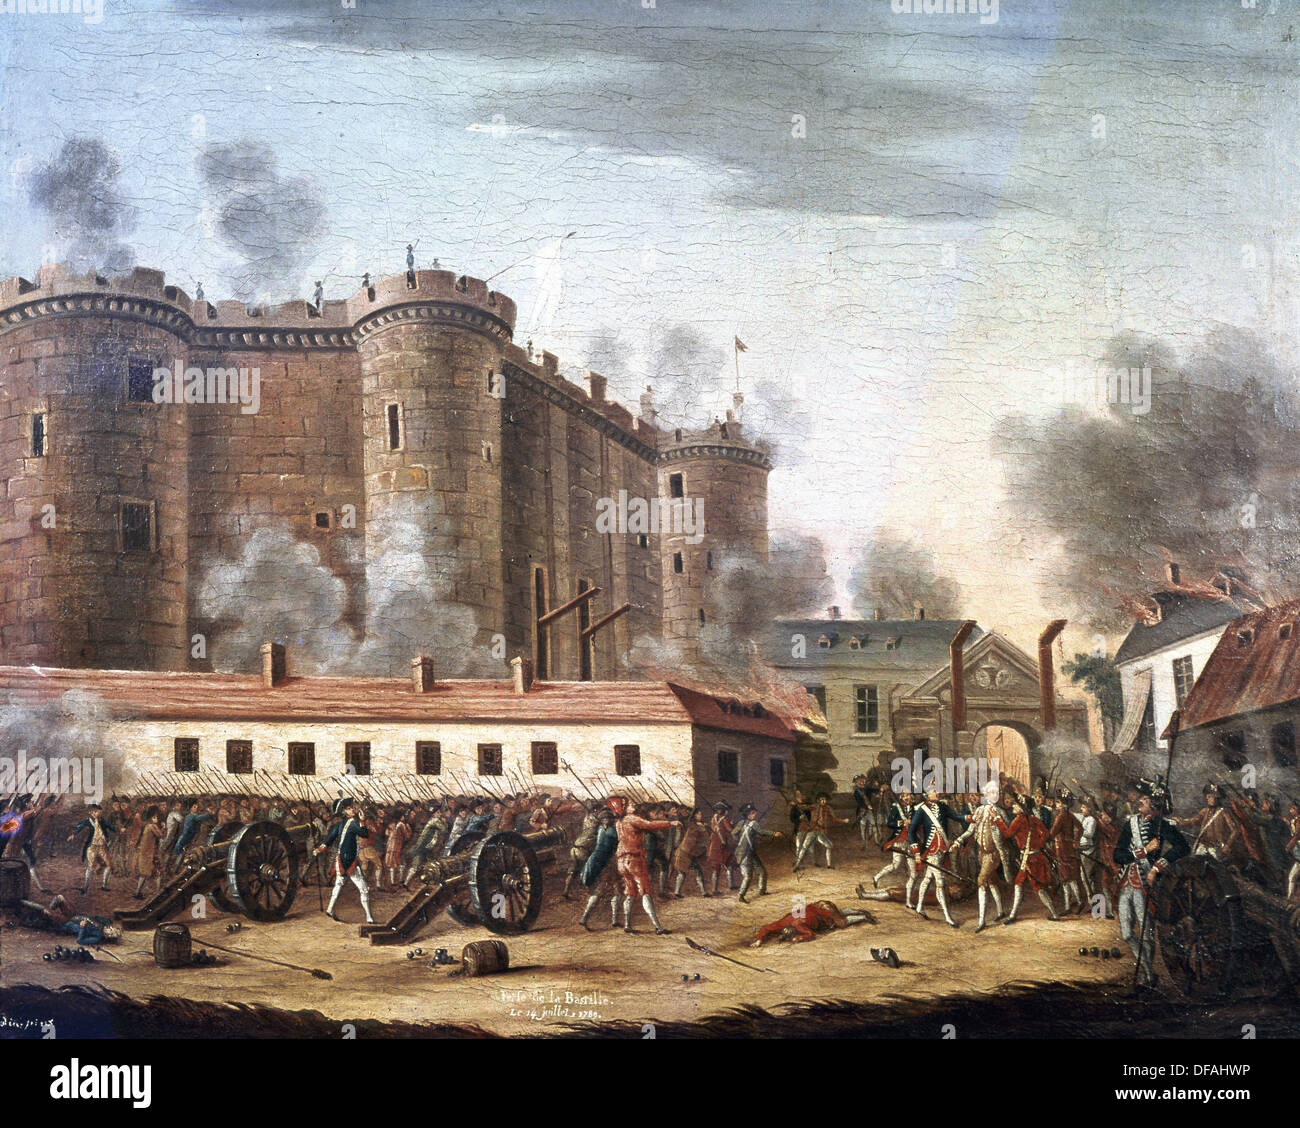 the storming of bastille essay Need writing essay about storming of bastille the mob that stormed the bastille on july 14th, 1789 was a group of citizens that were fierce, enraged, and blood .